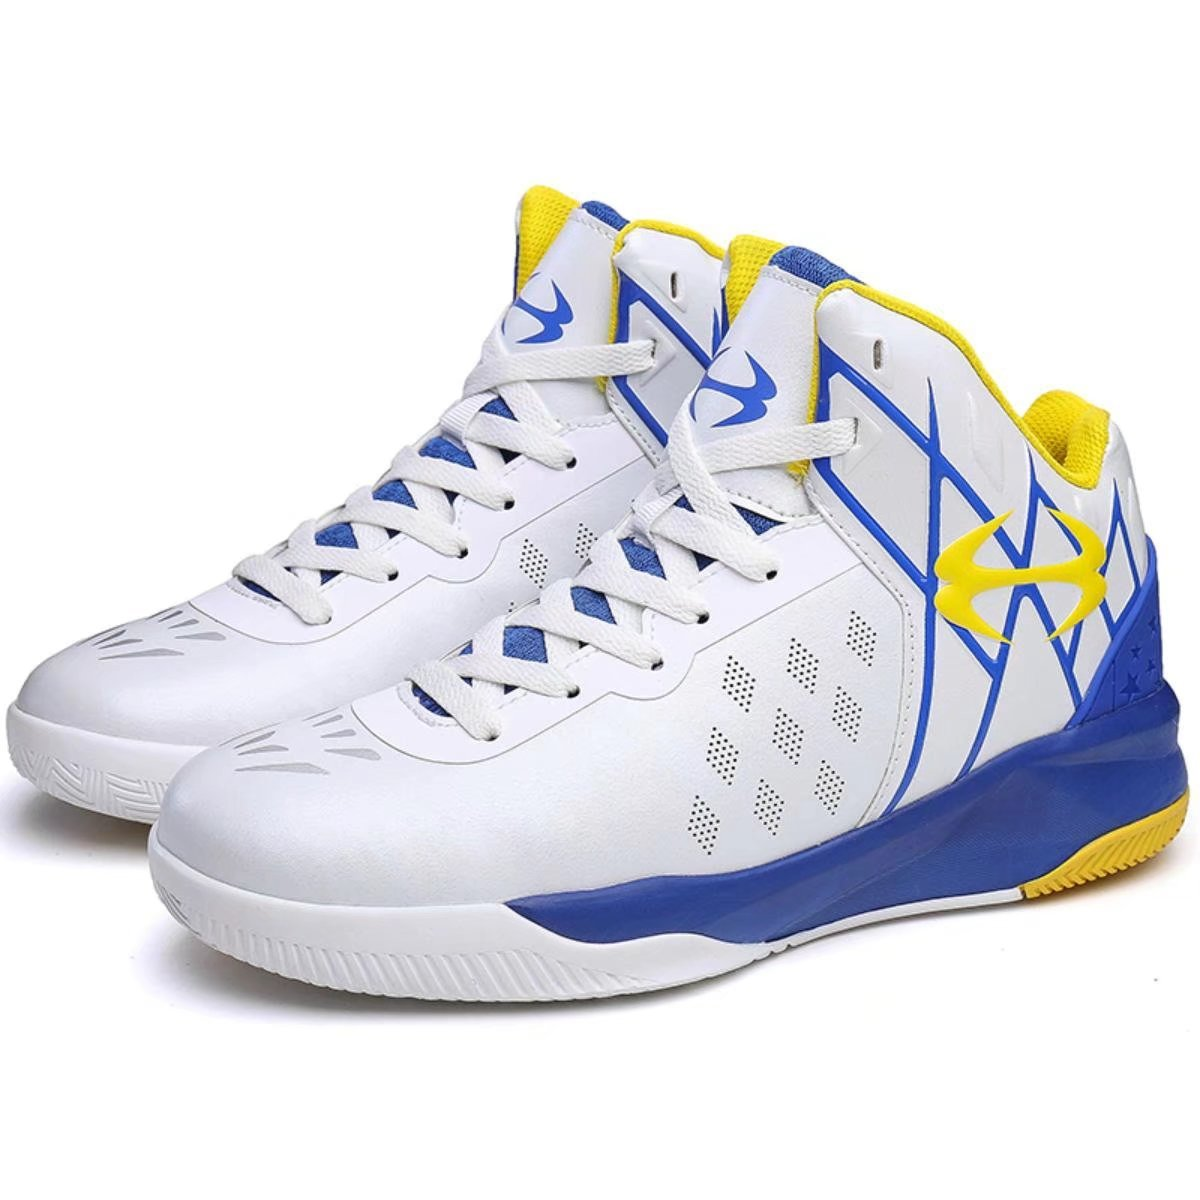 Men's Allstart Sports Shoe Running Casual Ankle-High Breathable Basketball Shoes for boy